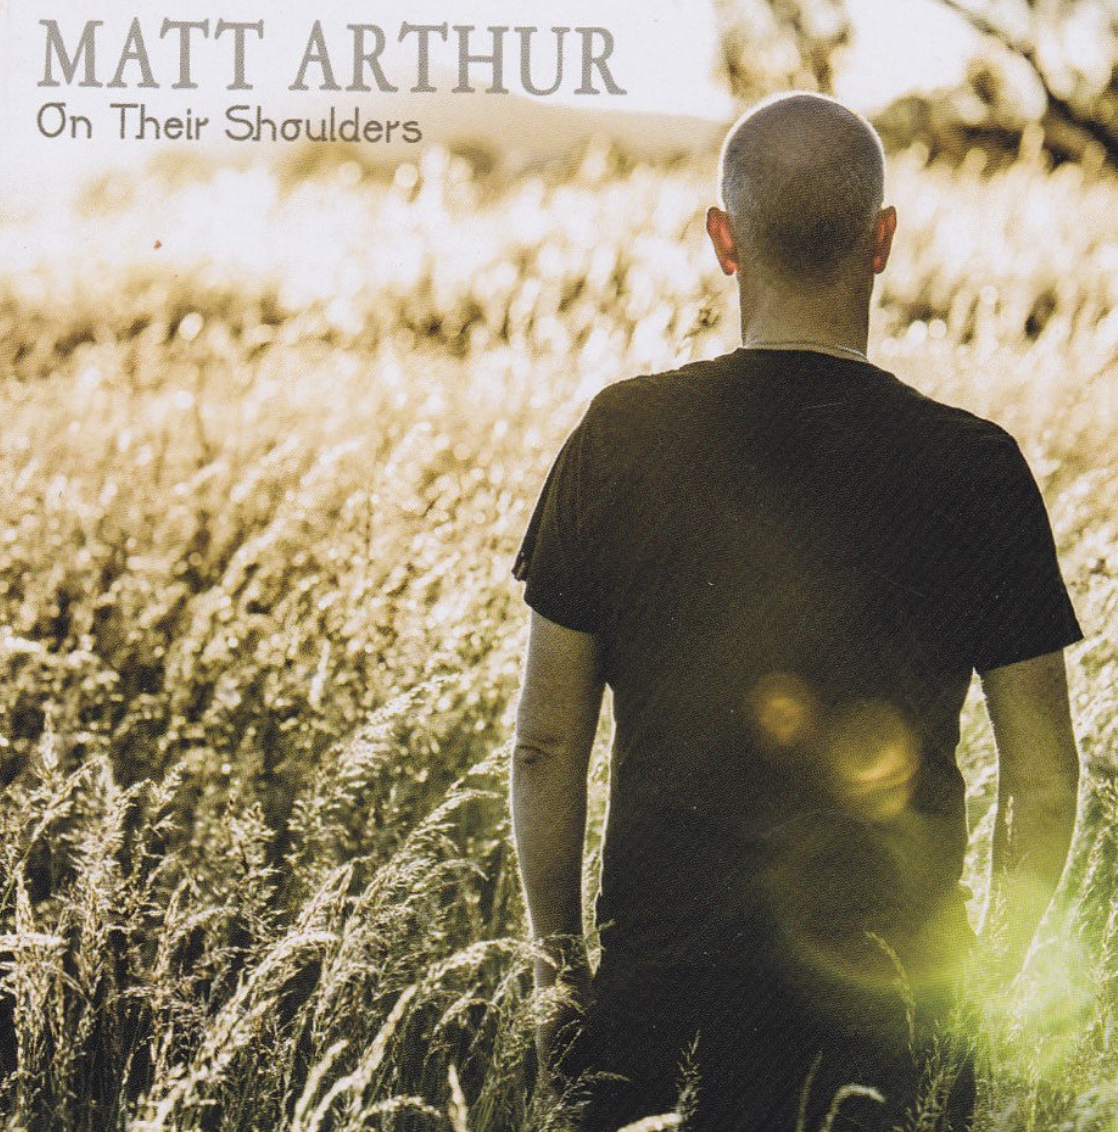 Matt Arthur - On Their Shoulders - blog post image